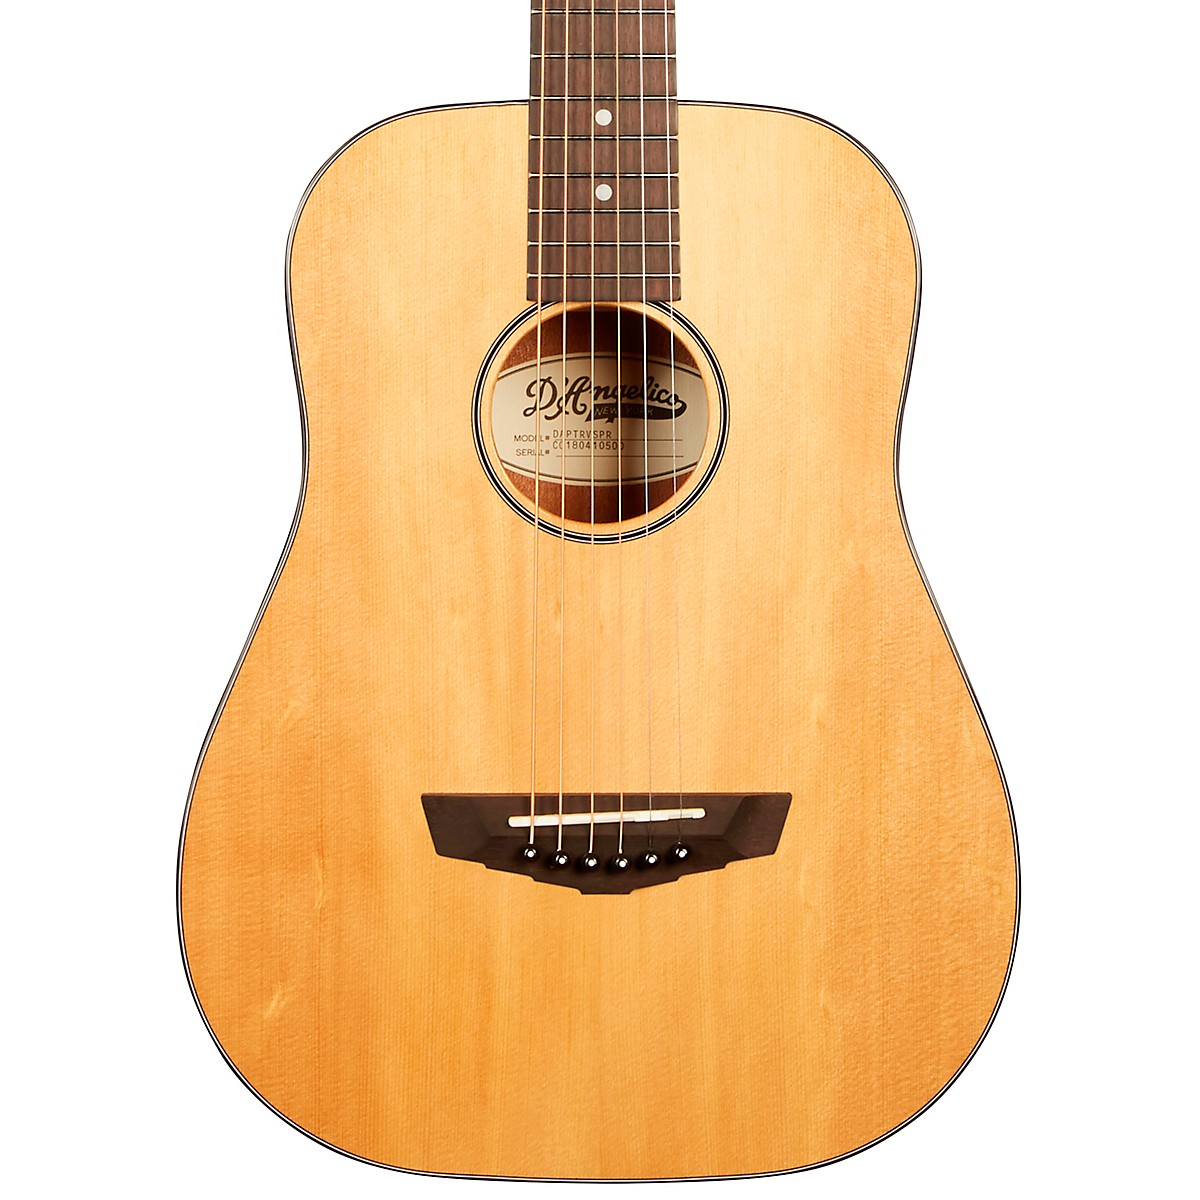 D'Angelico Premier Series Utica Mini Acoustic Guitar With Spruce Top